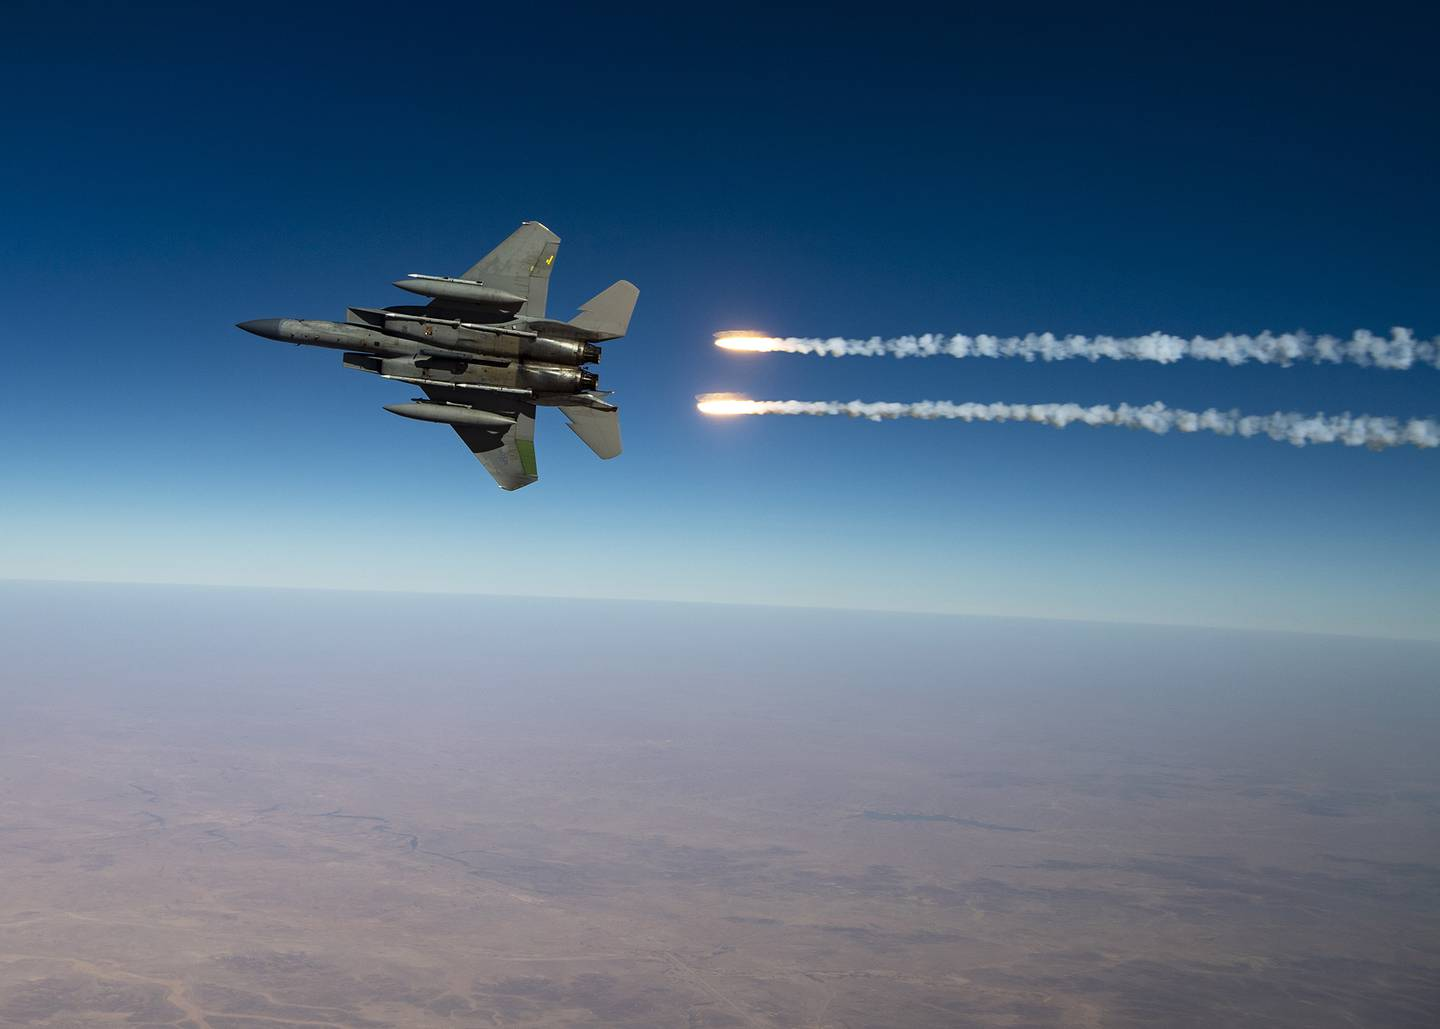 A U.S. Air Force F-15C Eagles release flares over the U.S. Central Command area of responsibility Aug. 13, 2020